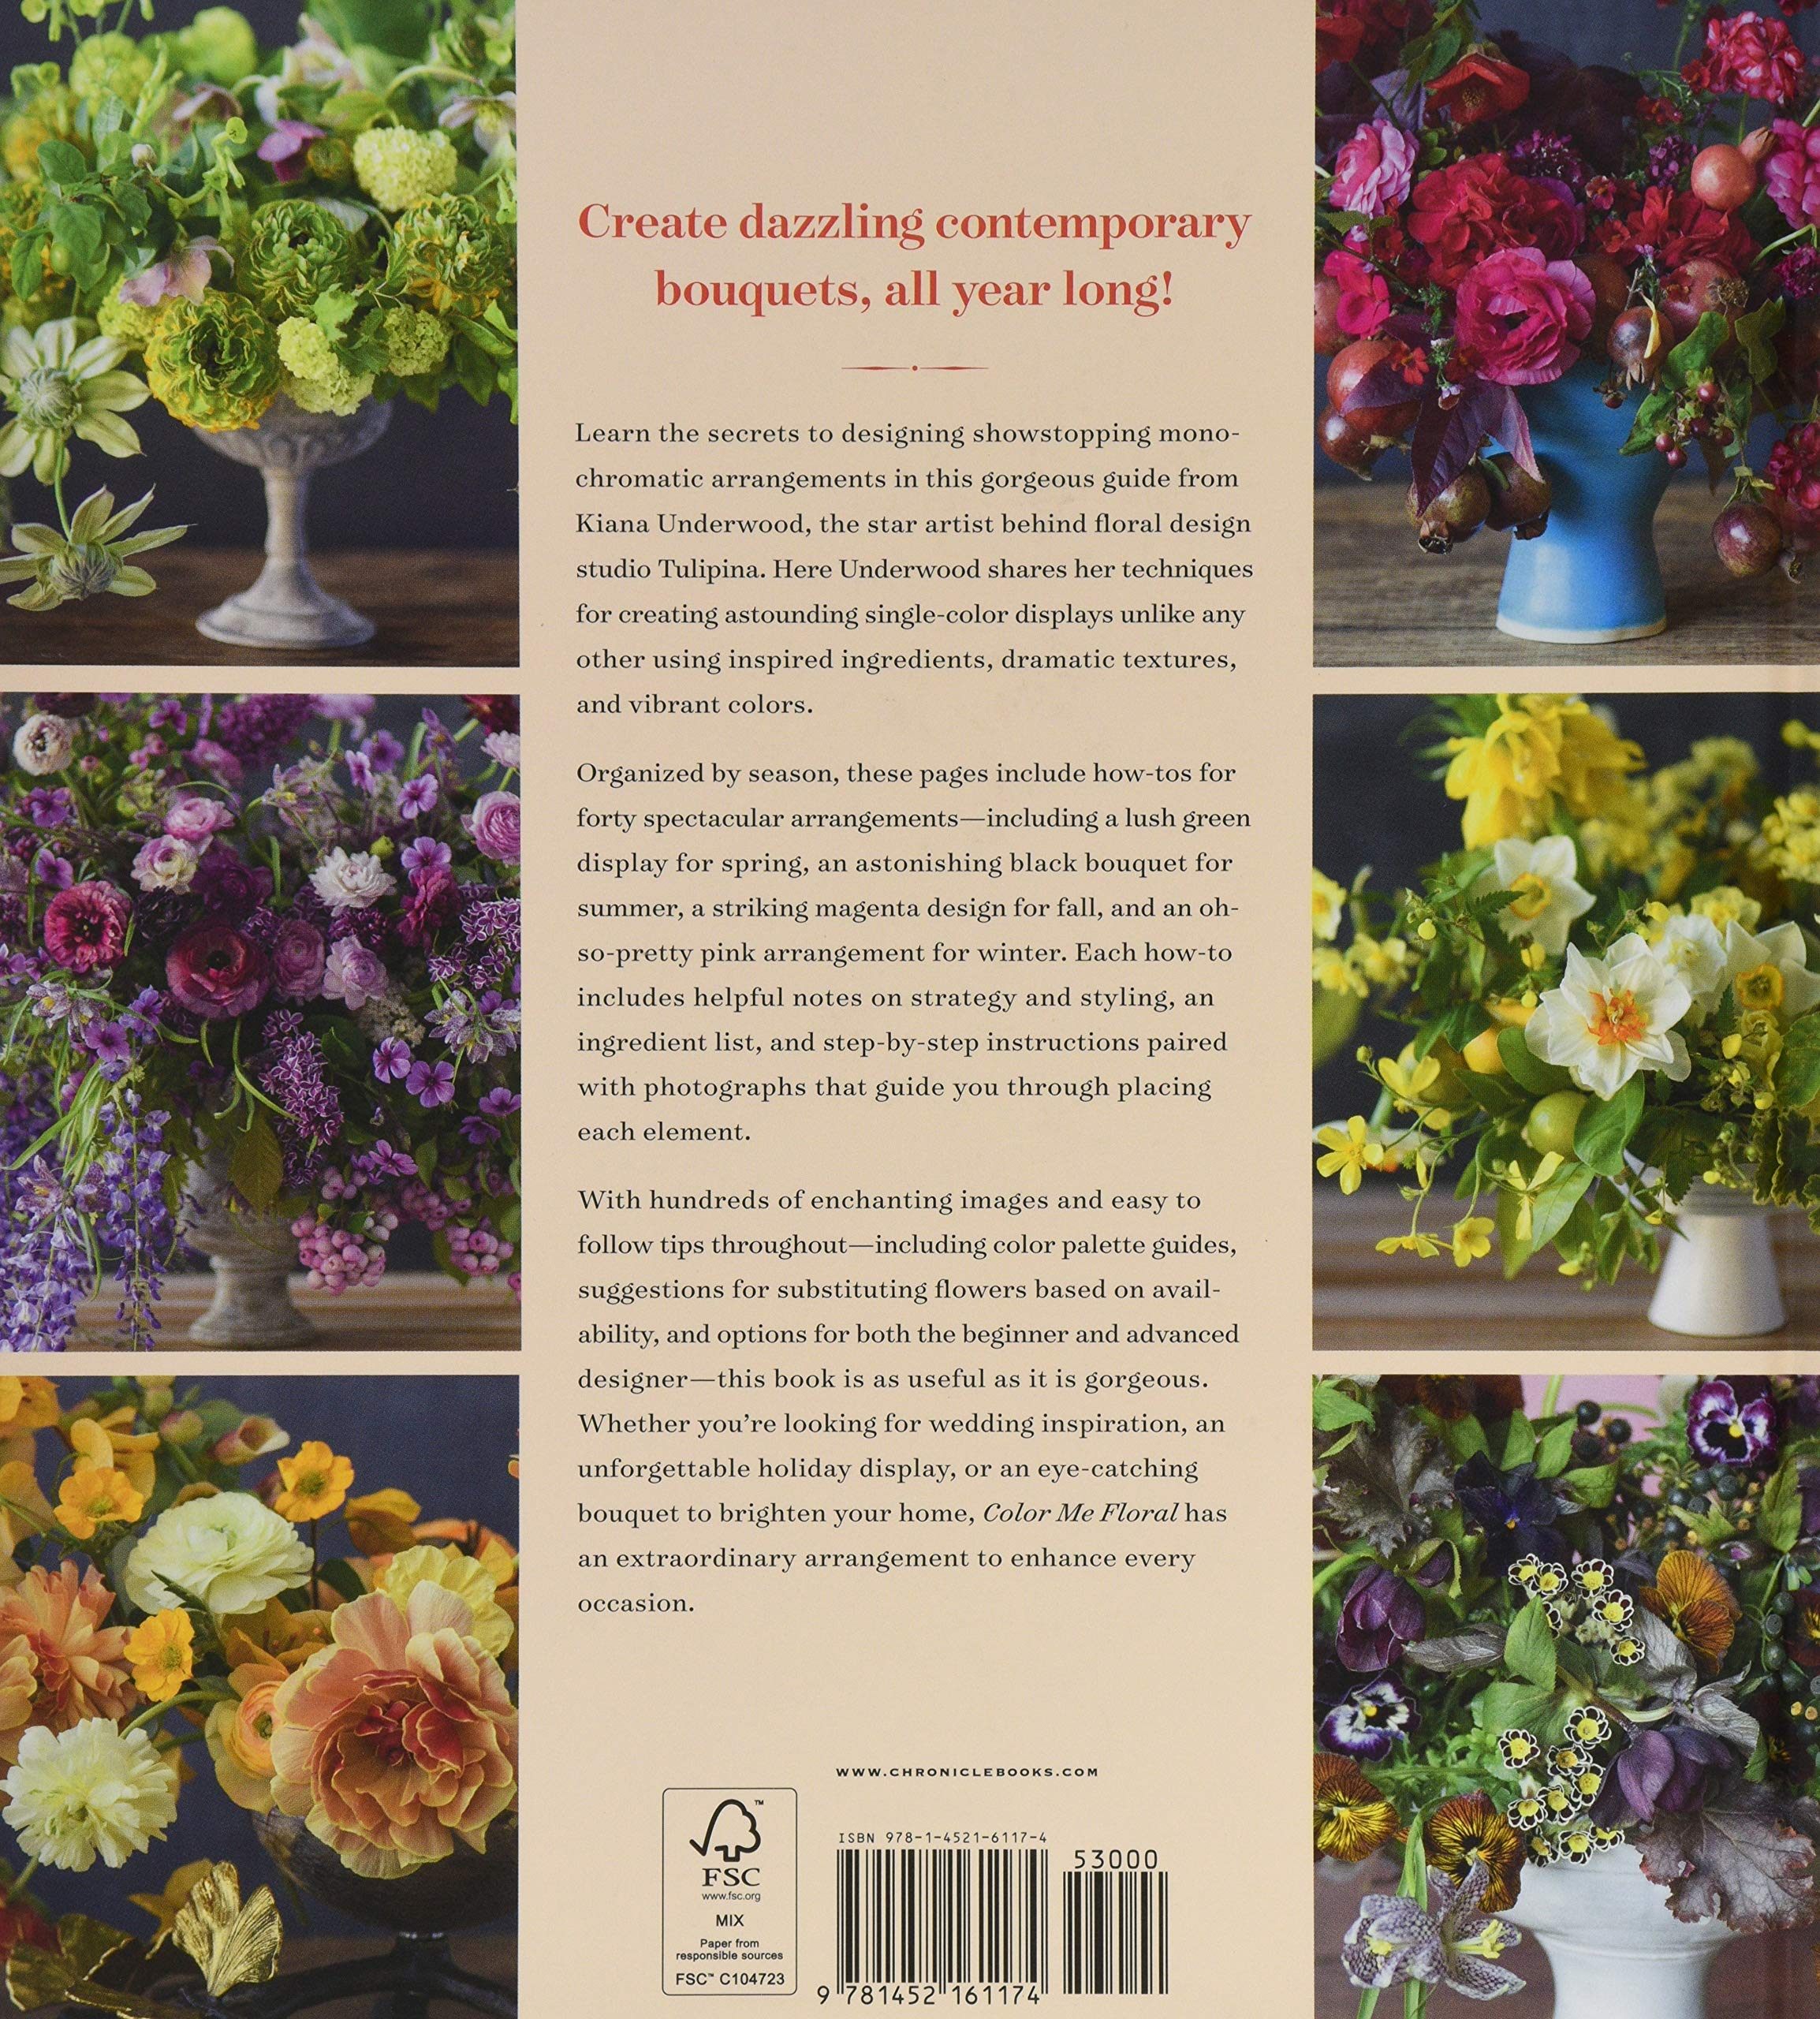 Color Me Floral Techniques For Creating Stunning Monochromatic Arrangements For Every Season Flower Arranging Books Flower Color Guide Floral Designs Books Coffee Table Books Underwood Kiana Underwood Nathan 9781452161174 Amazon Com Books